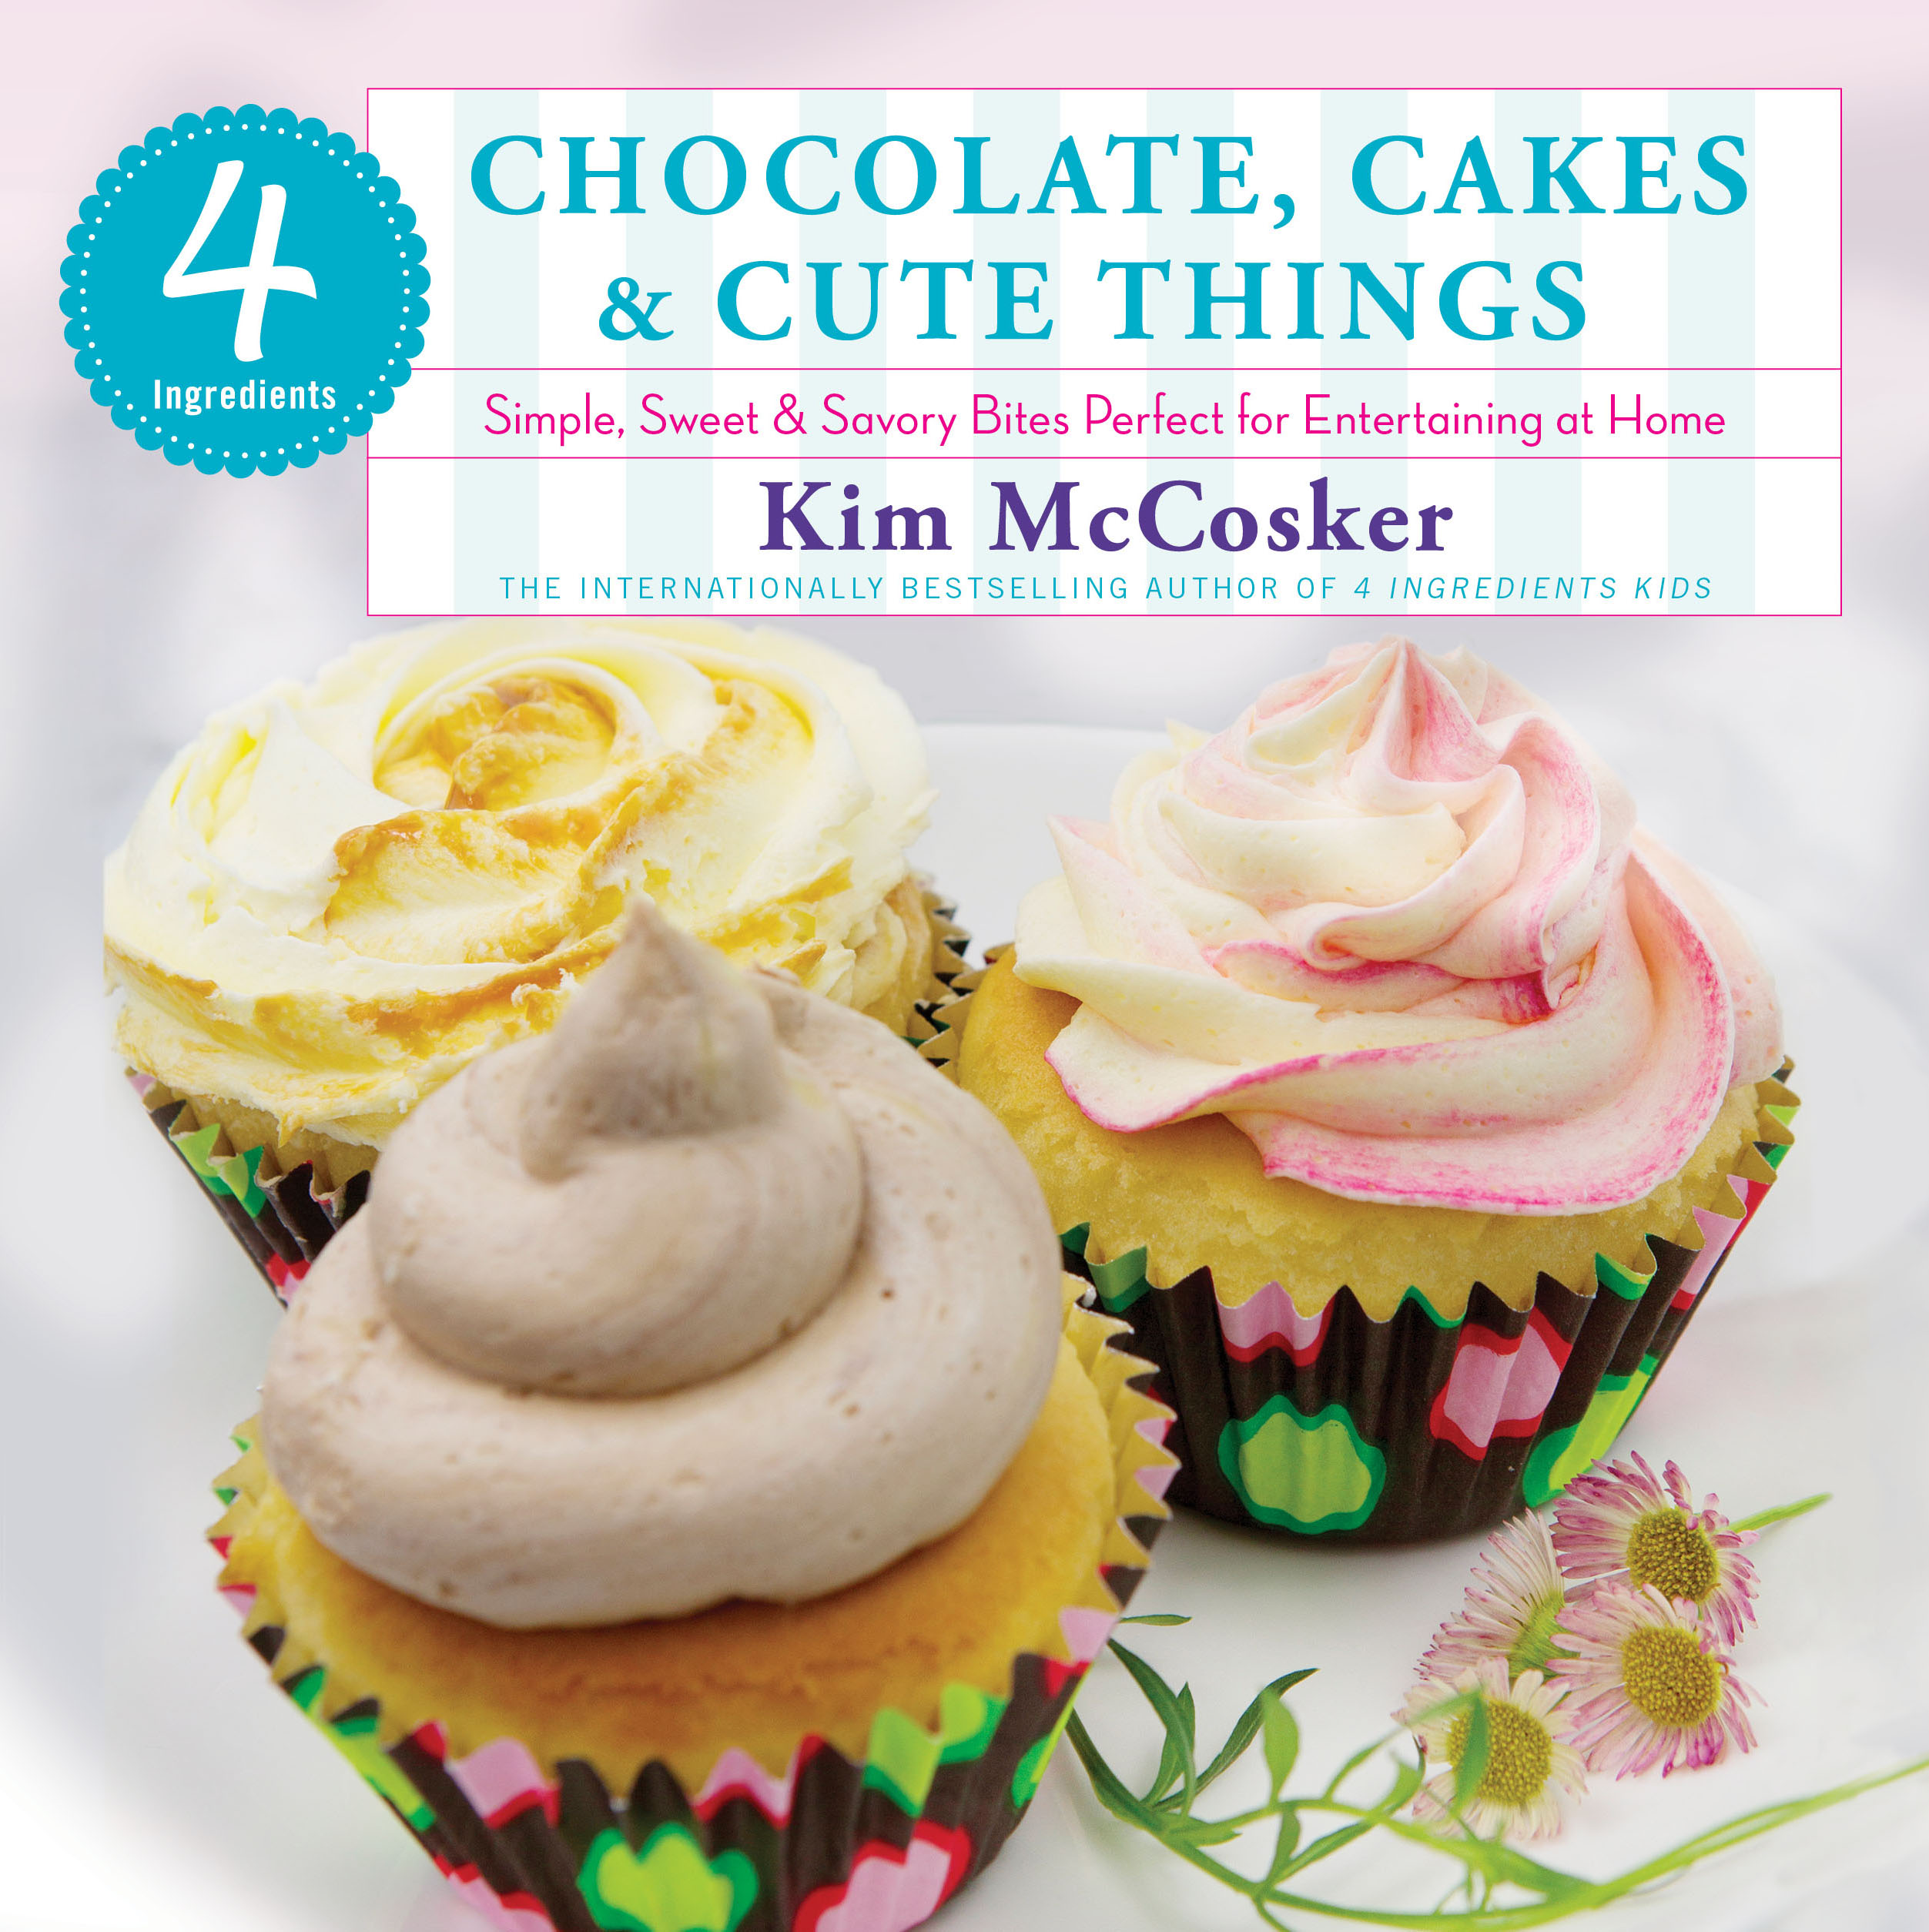 4 ingredients chocolate cakes cute things 9781451635683 hr